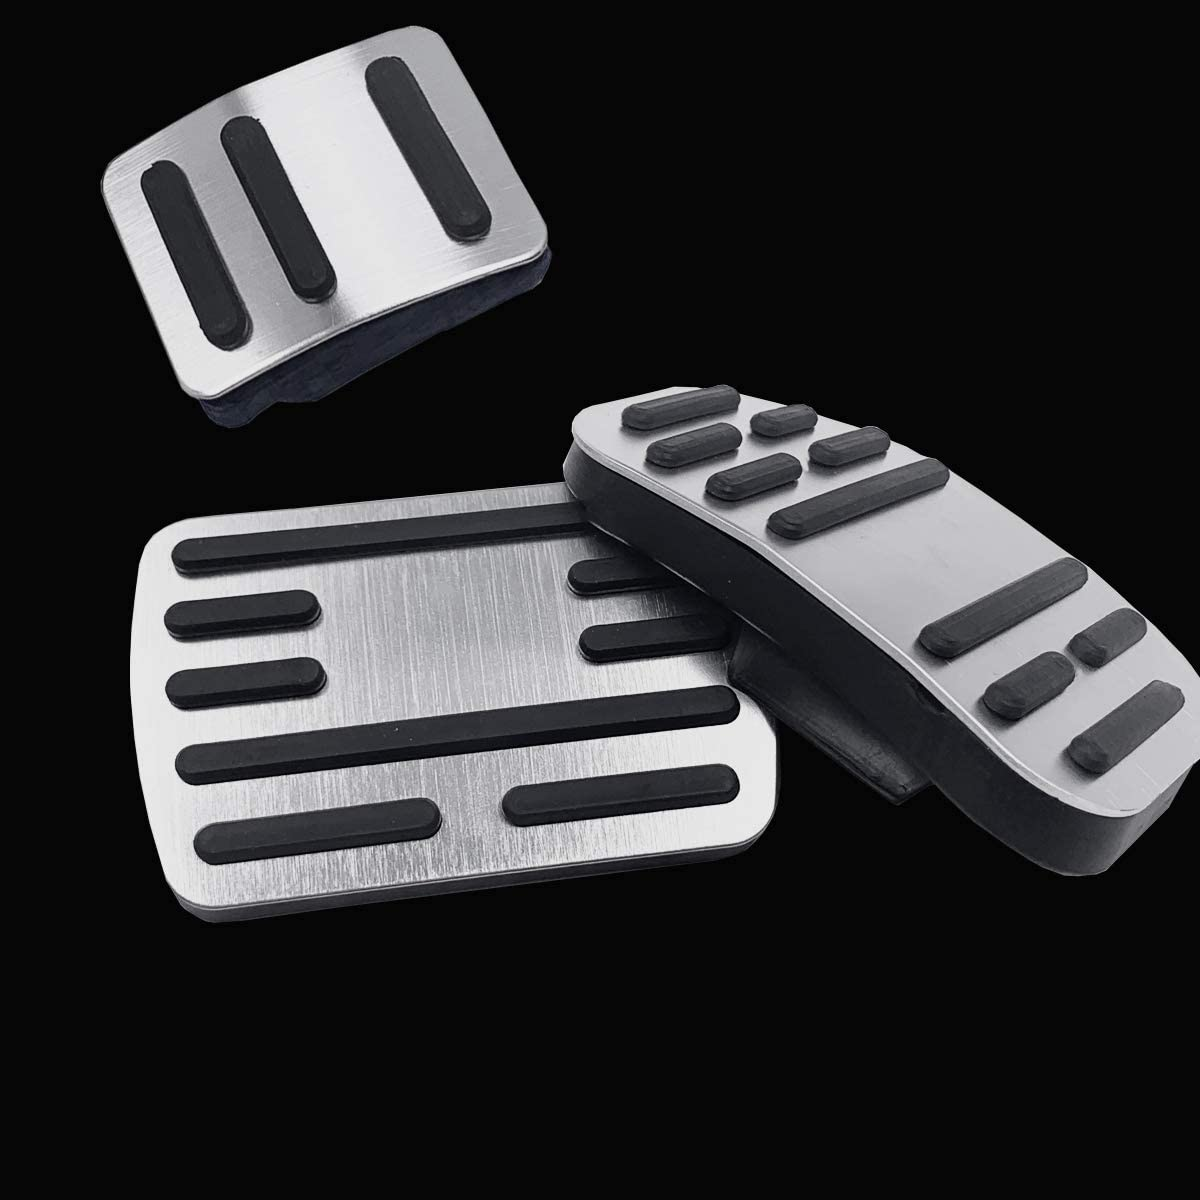 15-18 JARONX Pedalkappen Ford F150 F150 Pedal Cover Pedal Covers for Ford F150